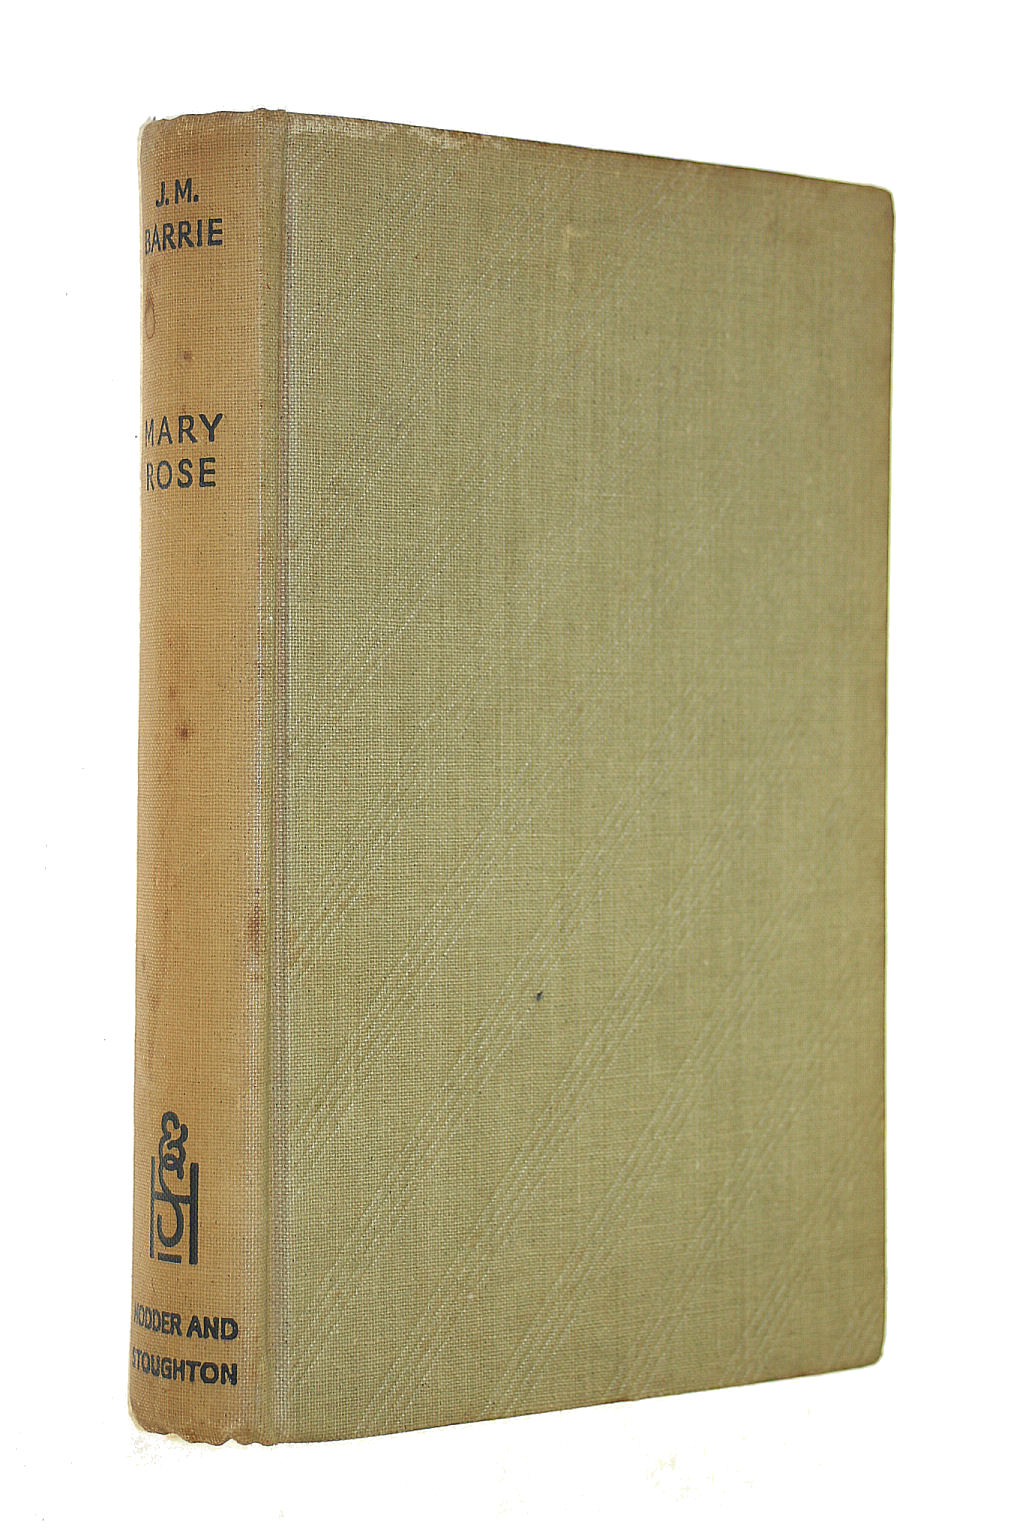 Image for Mary Rose: A Play In Three Acts (The Uniform Edition Of The Plays Of J.M. Barrie)